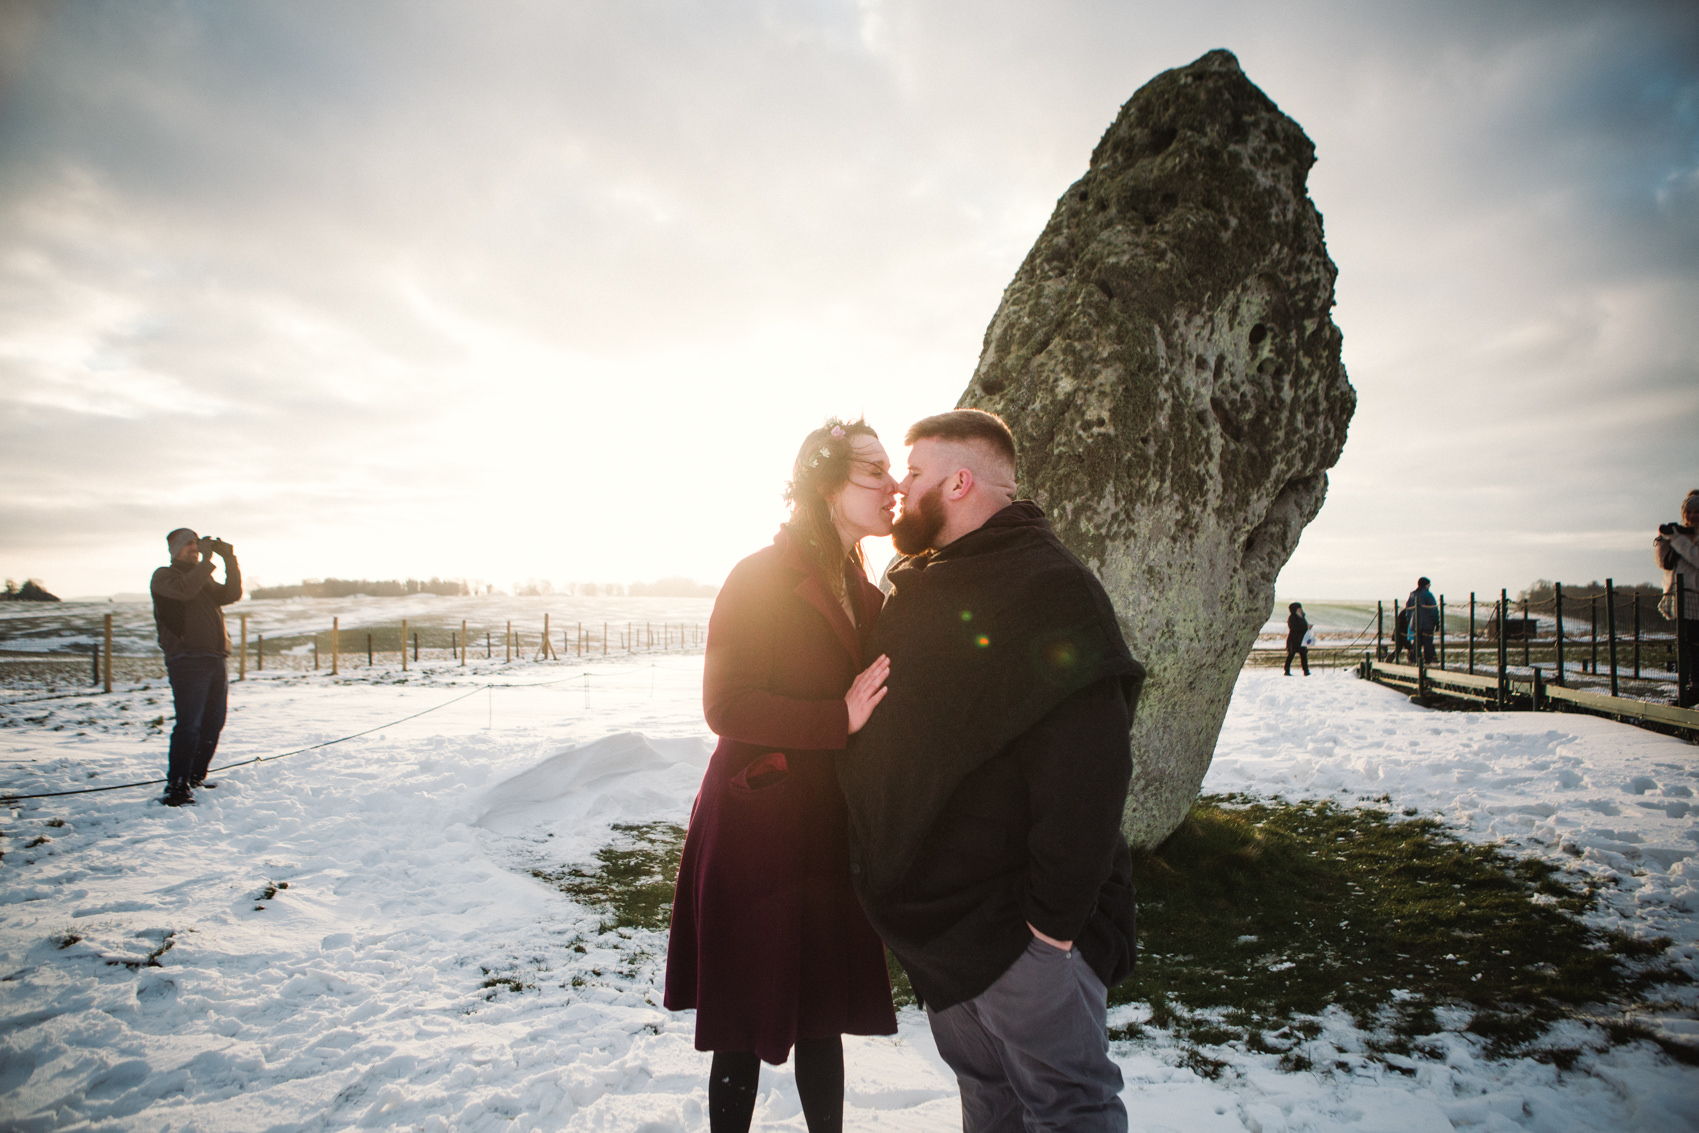 Engagement Adventures | Devon Wedding Photographer. Stonehenge, snowy Stonehenge, Stonehenge open access, Stonehenge handfasting, Stonehenge elopement, pagan wedding